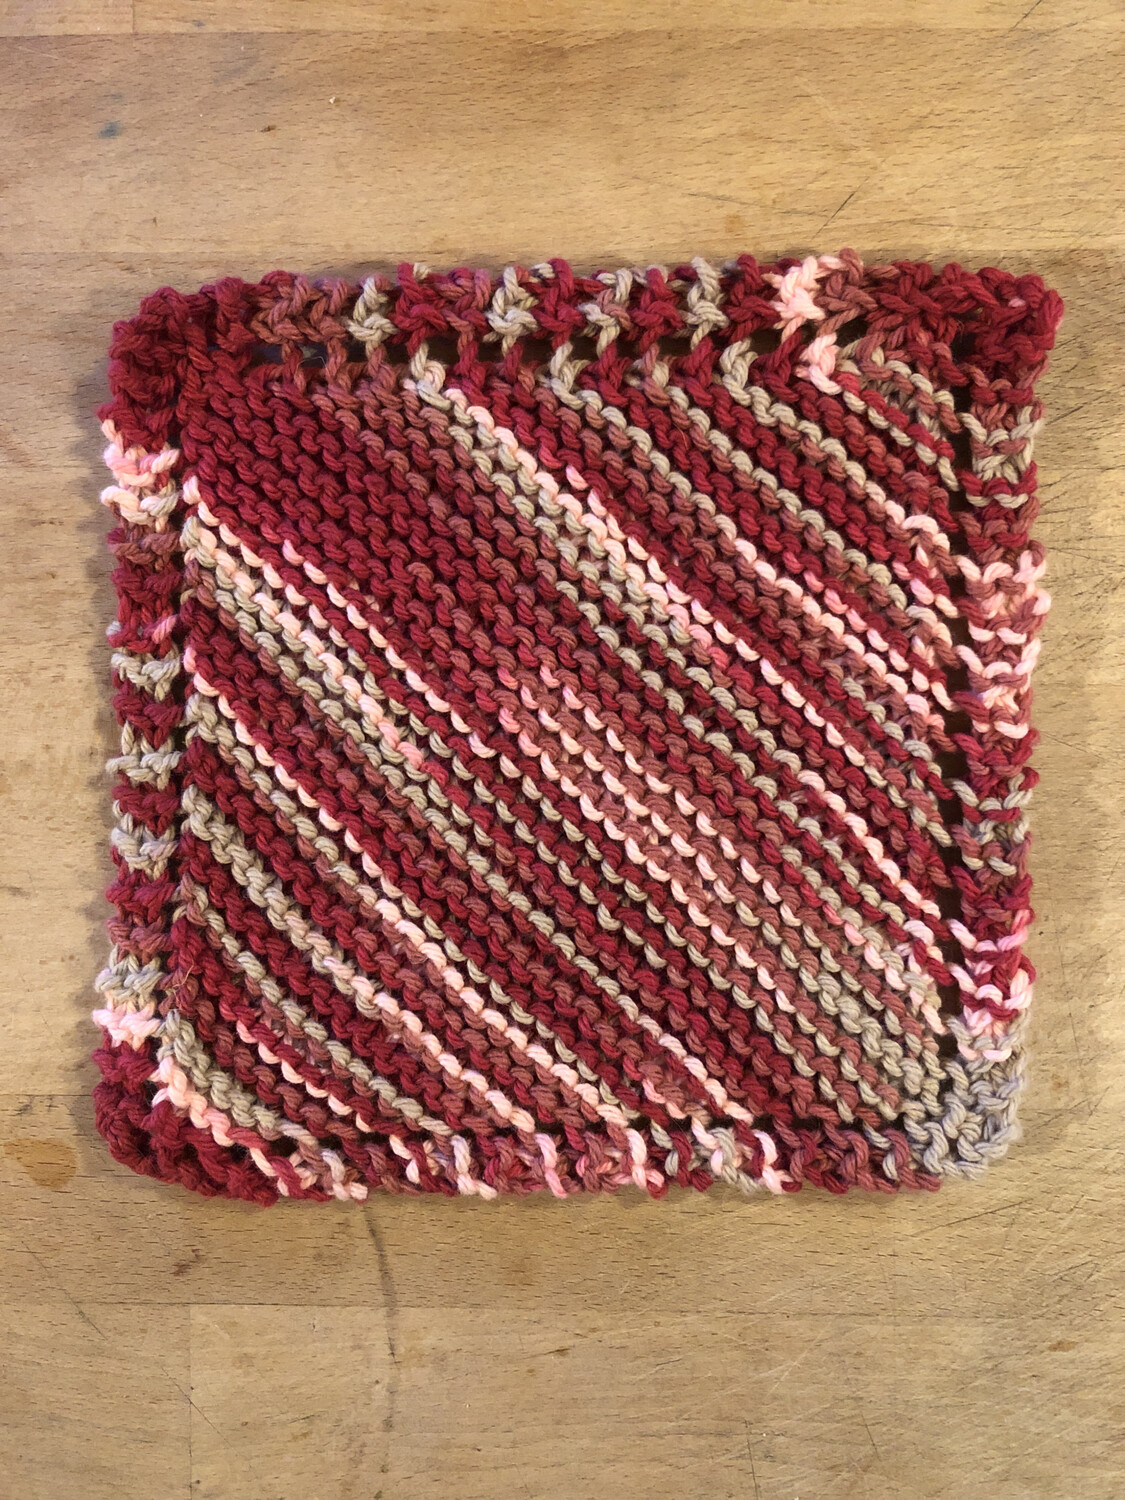 100% Cotton Brick Red, Pink, Tan Knit Washcloth - Classic Design